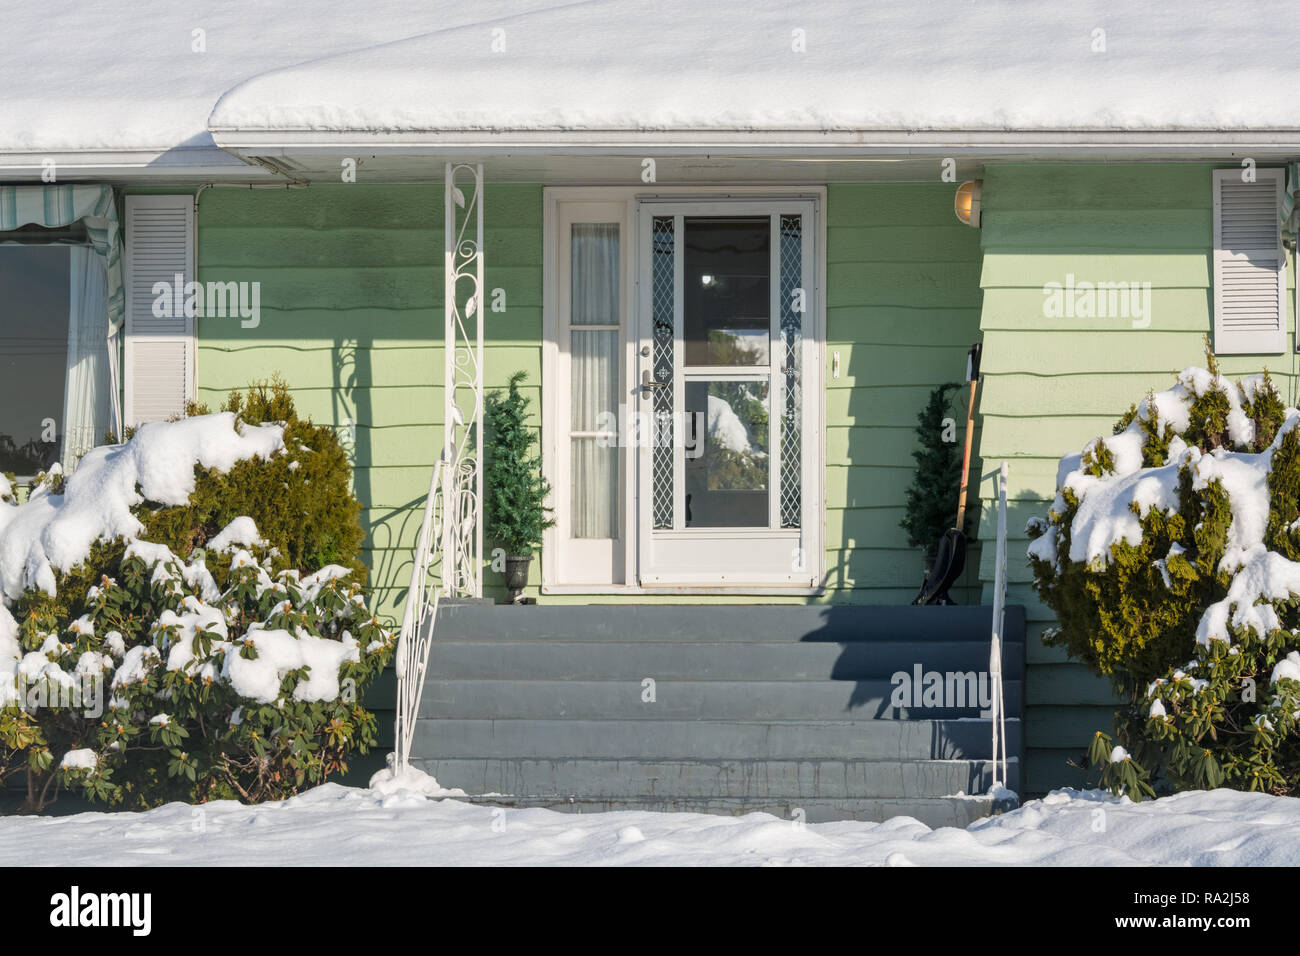 Residential house entrance on bright winter day in Canada - Stock Image